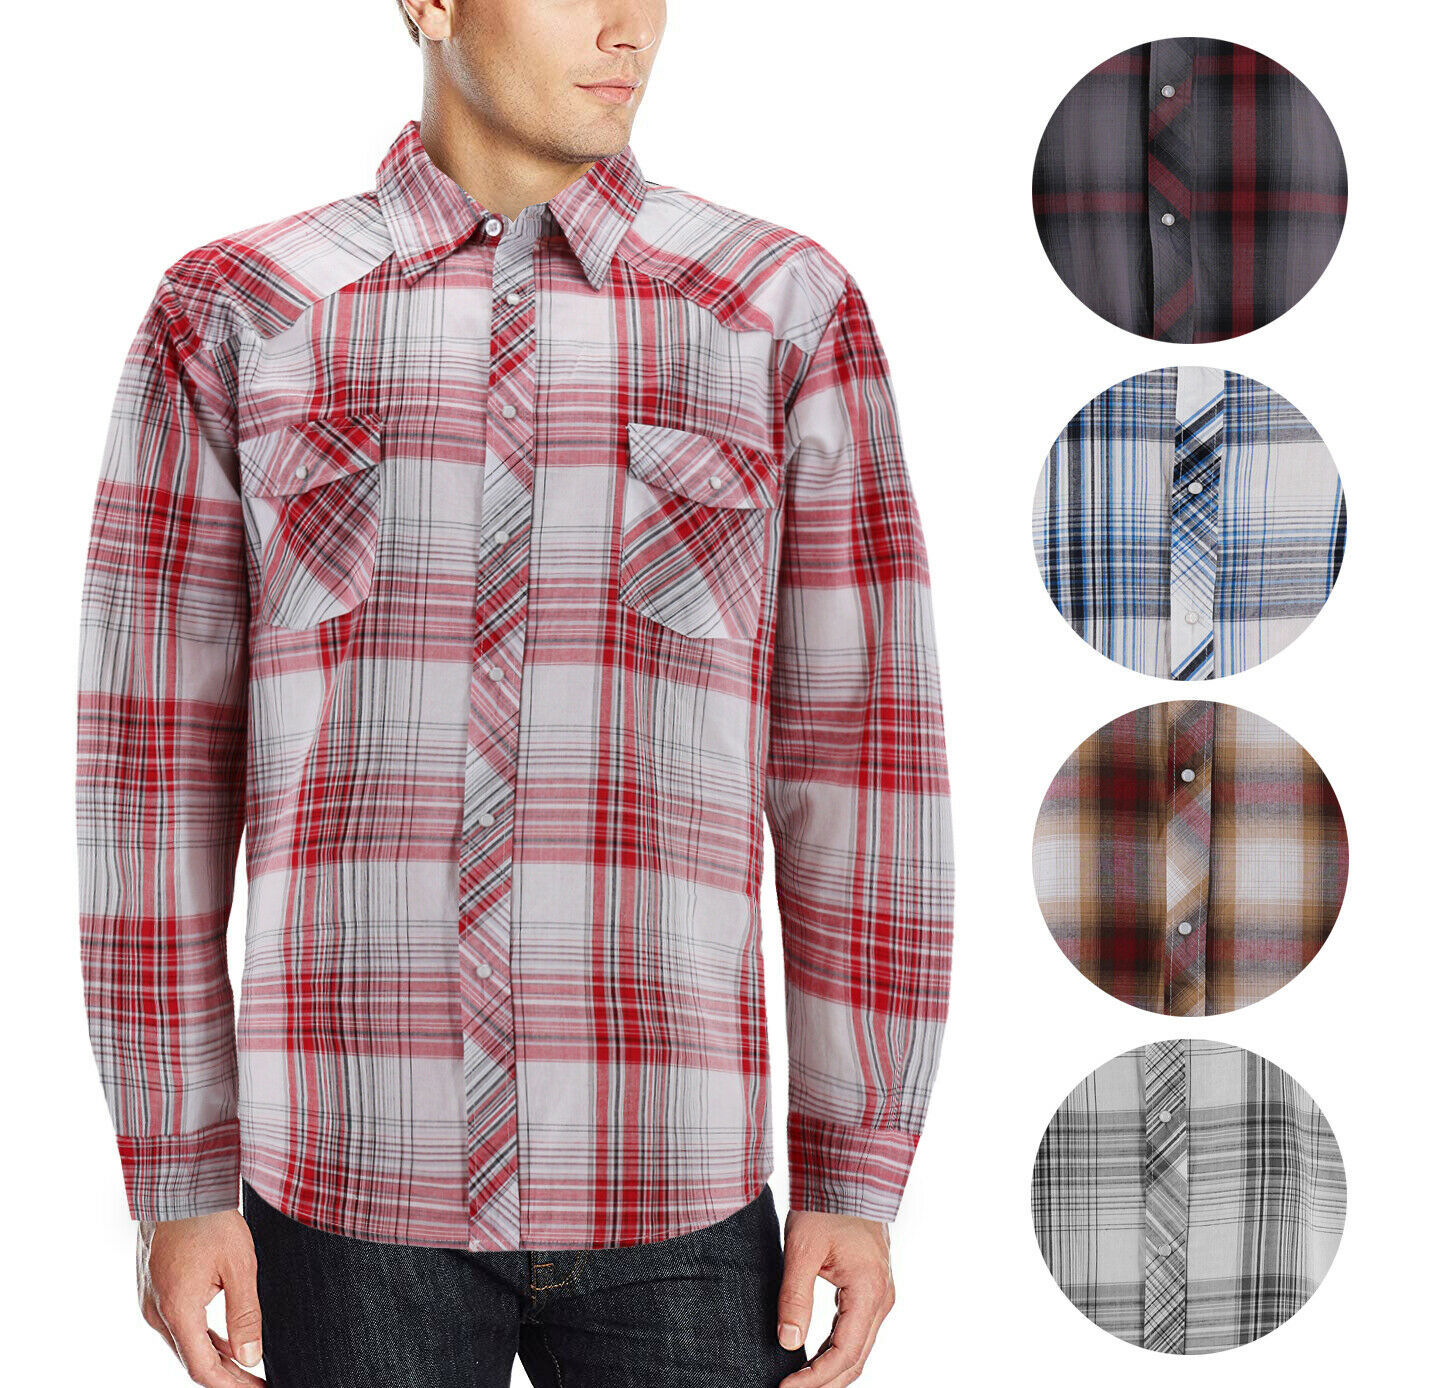 Men's Pearl Snap Button Down Casual Western Long Sleeve Plaid Cowboy Shirt